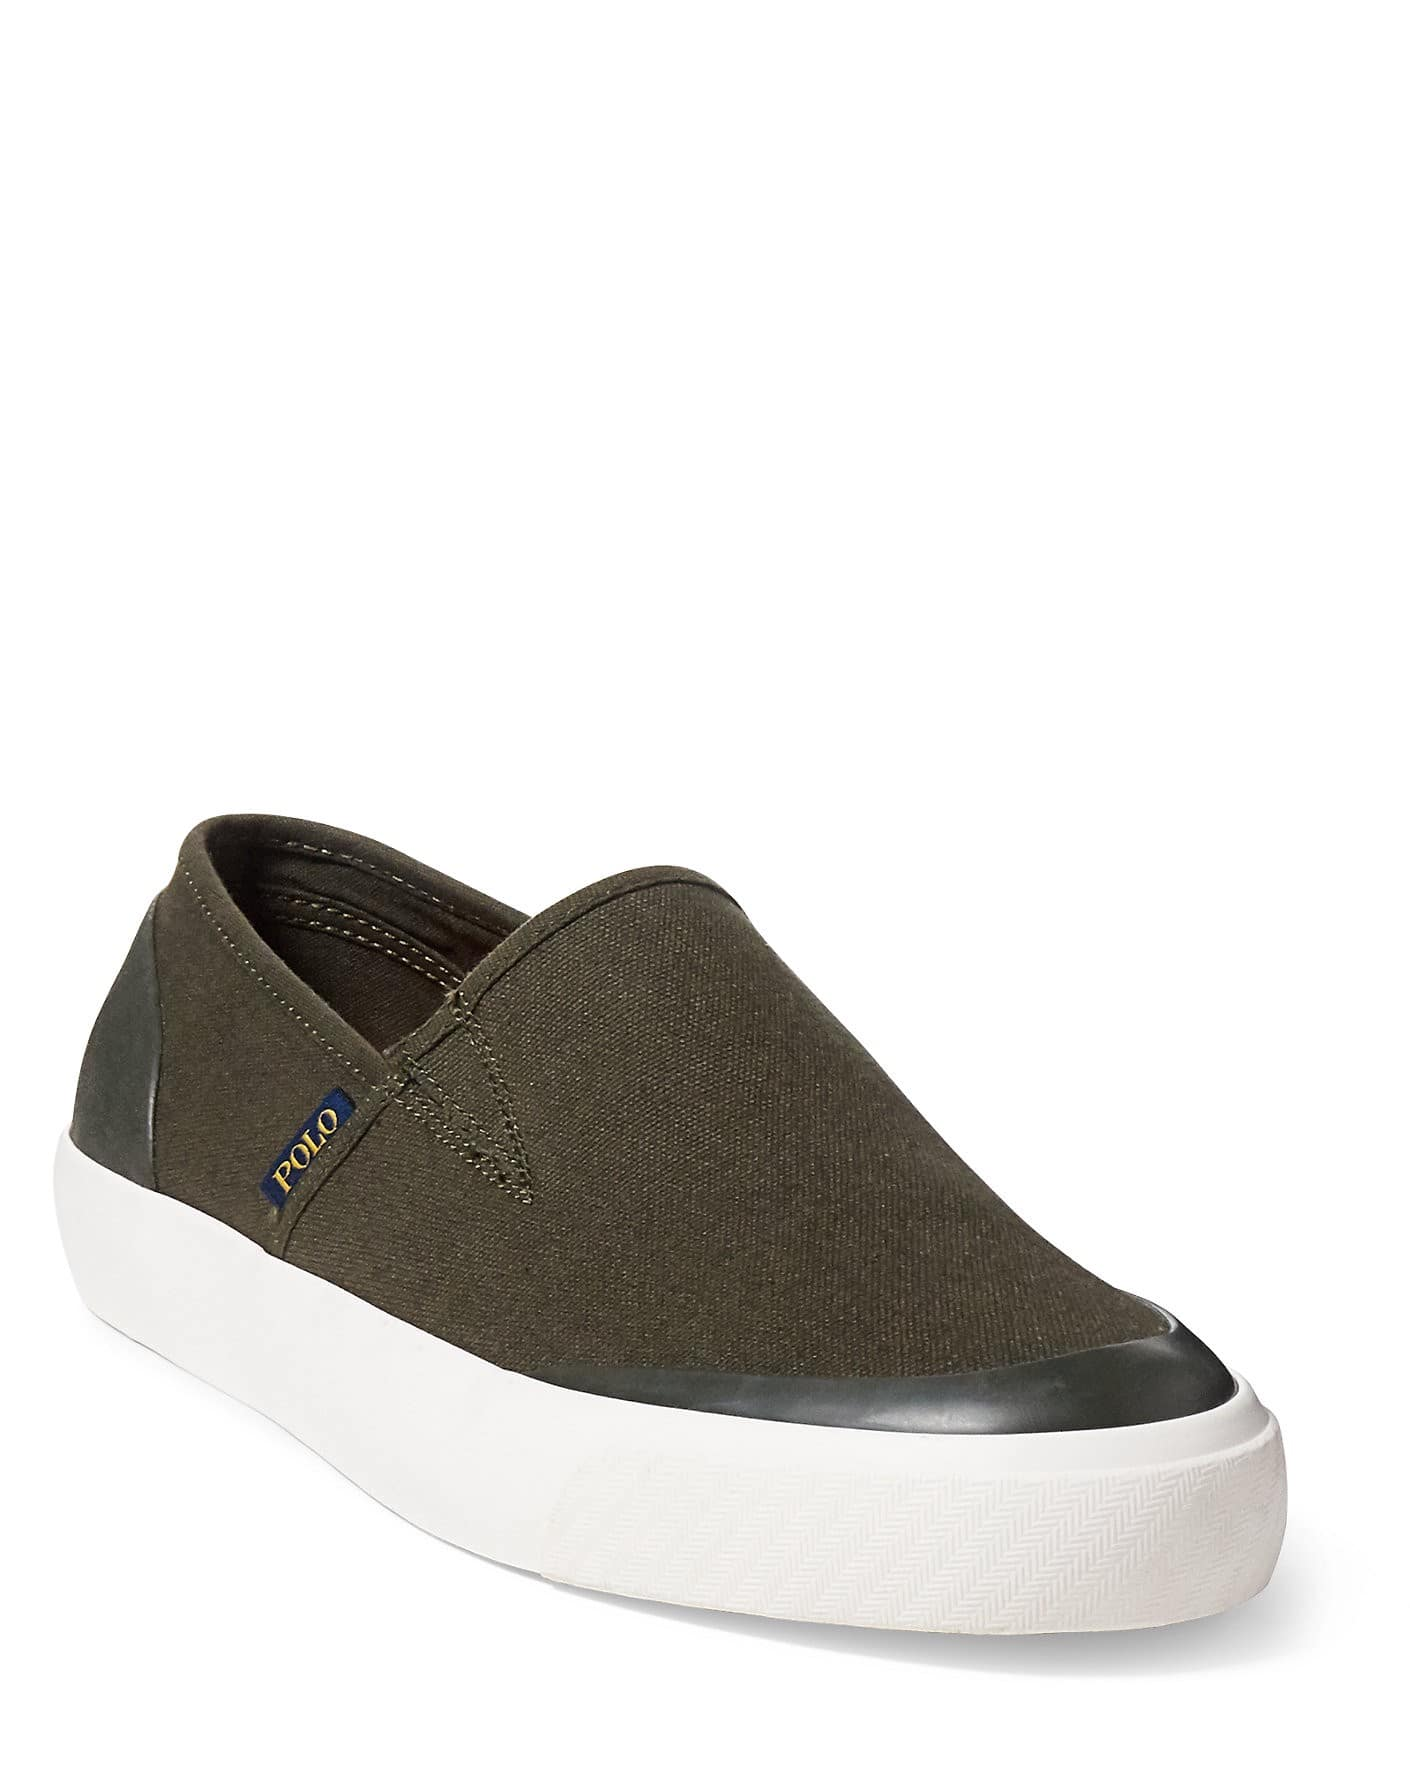 Polo Ralph Lauren Itford Canvas Slip-On Sneaker in Black, Company Olive, or White: $25 + FS